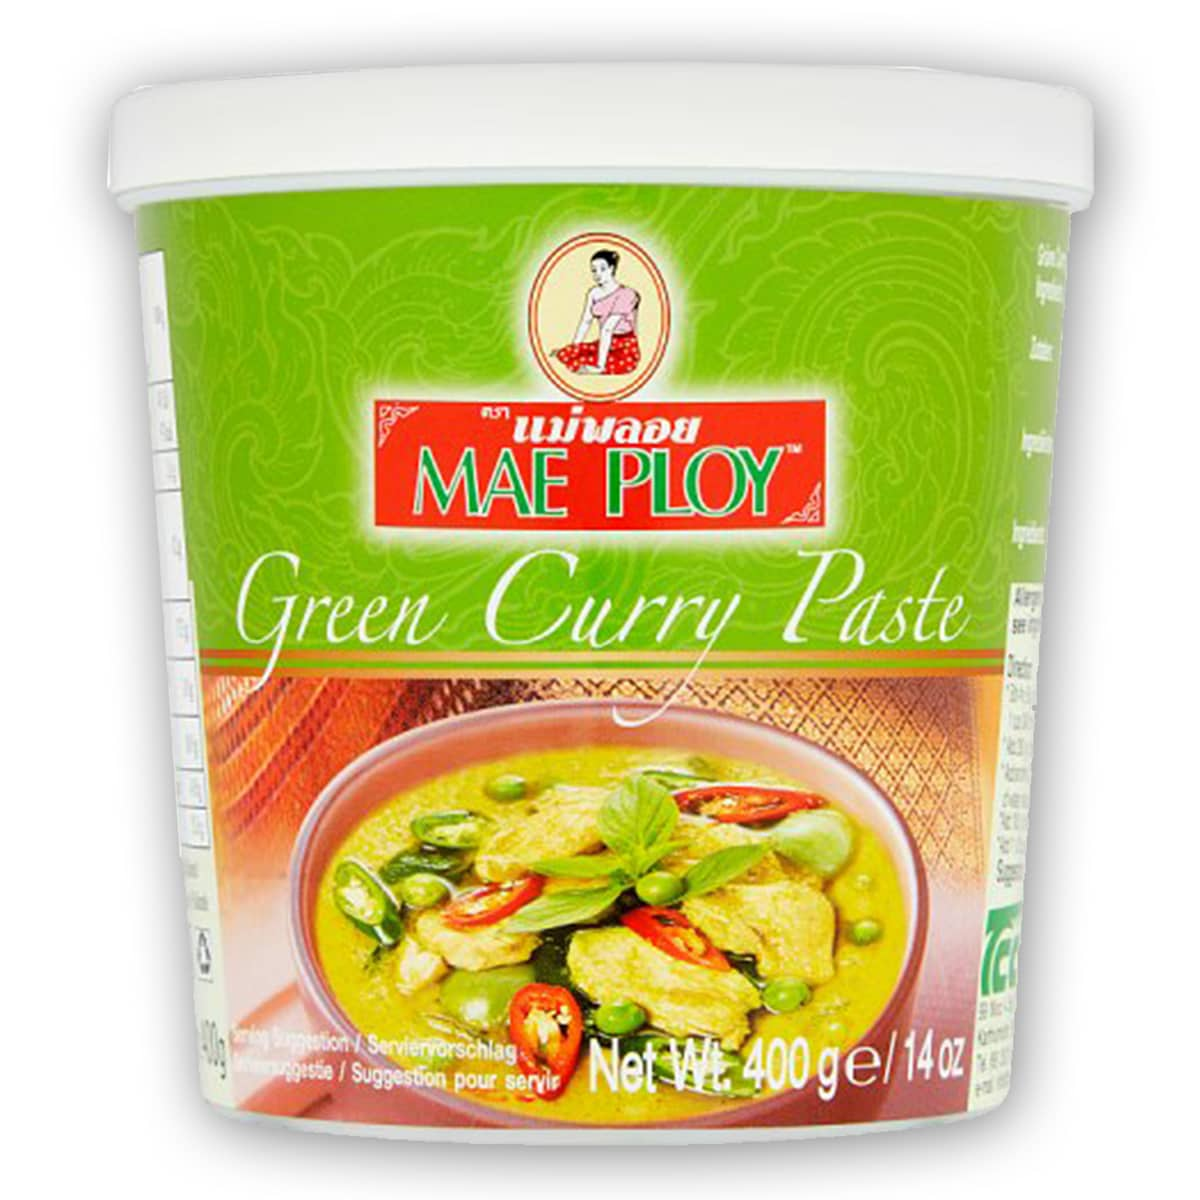 Buy Mae Ploy Green Curry Paste - 400 gm